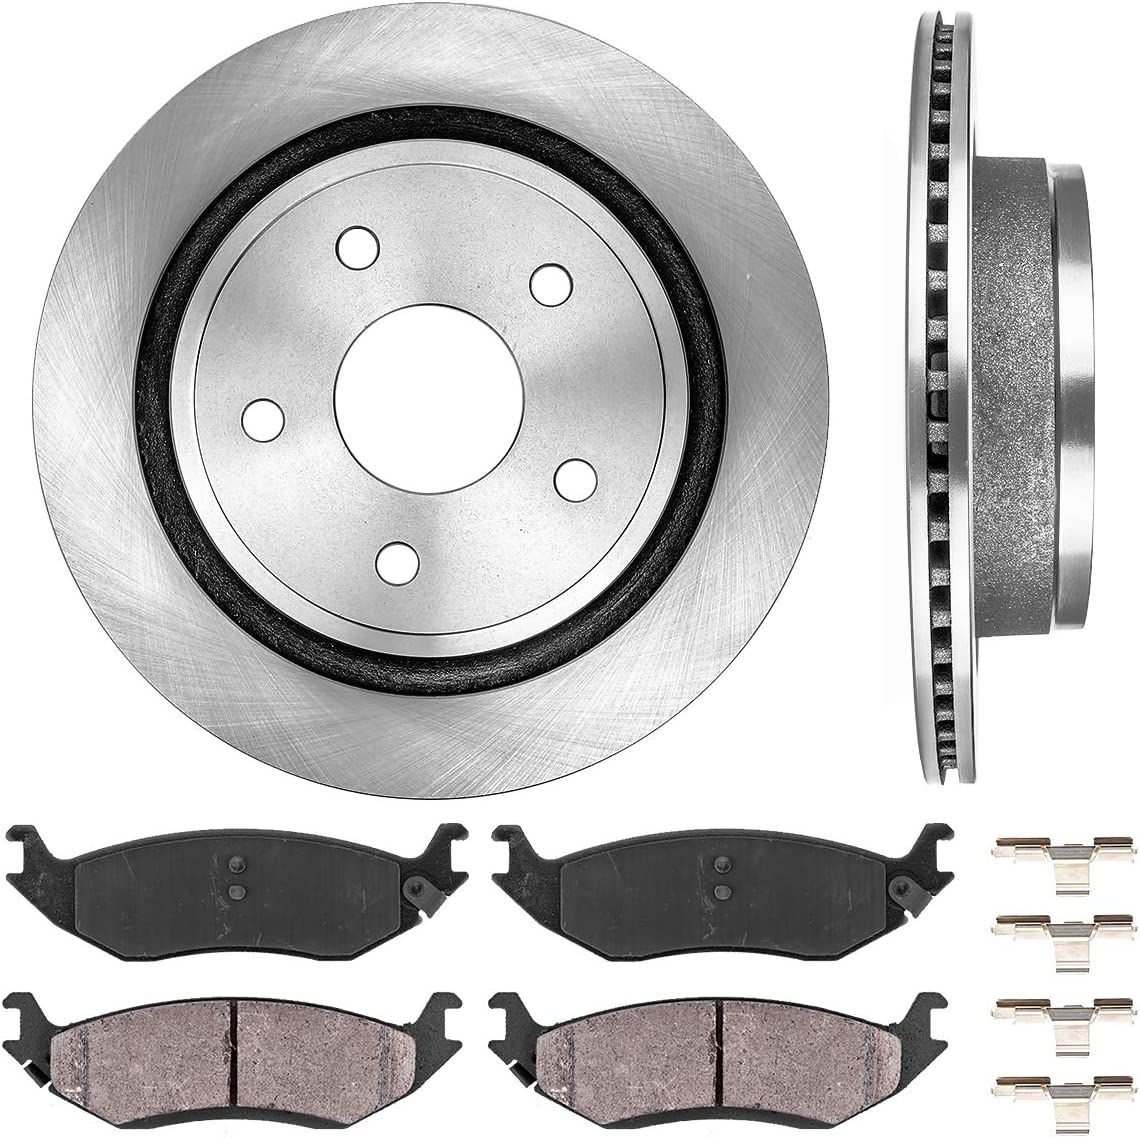 2007 2008 Acura TL Non Type-S Model OE Replacement Rotors w//Ceramic Pads F+R